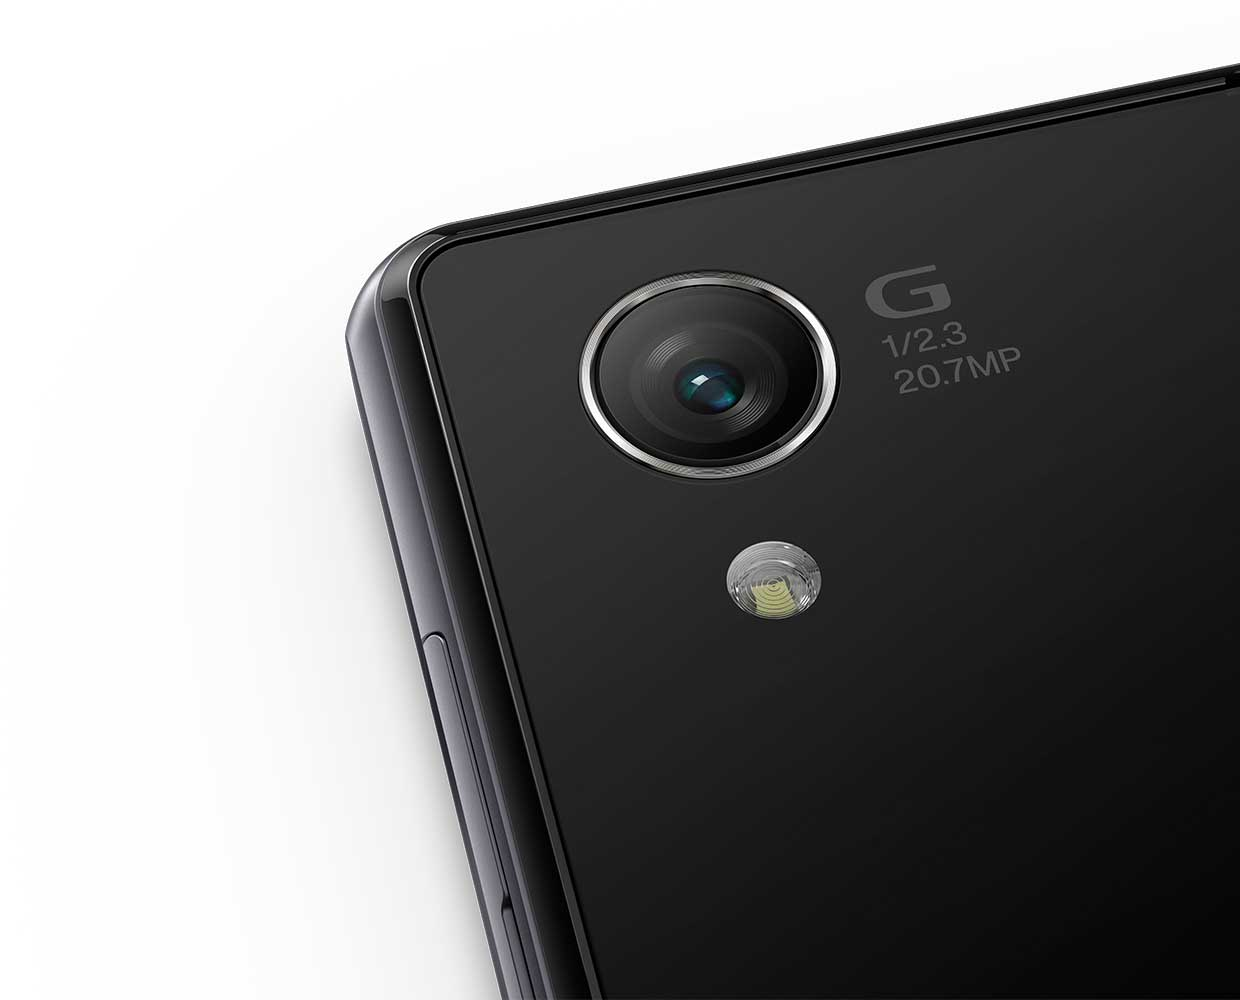 xperia-z1-features-camera-intelligent-human-eye